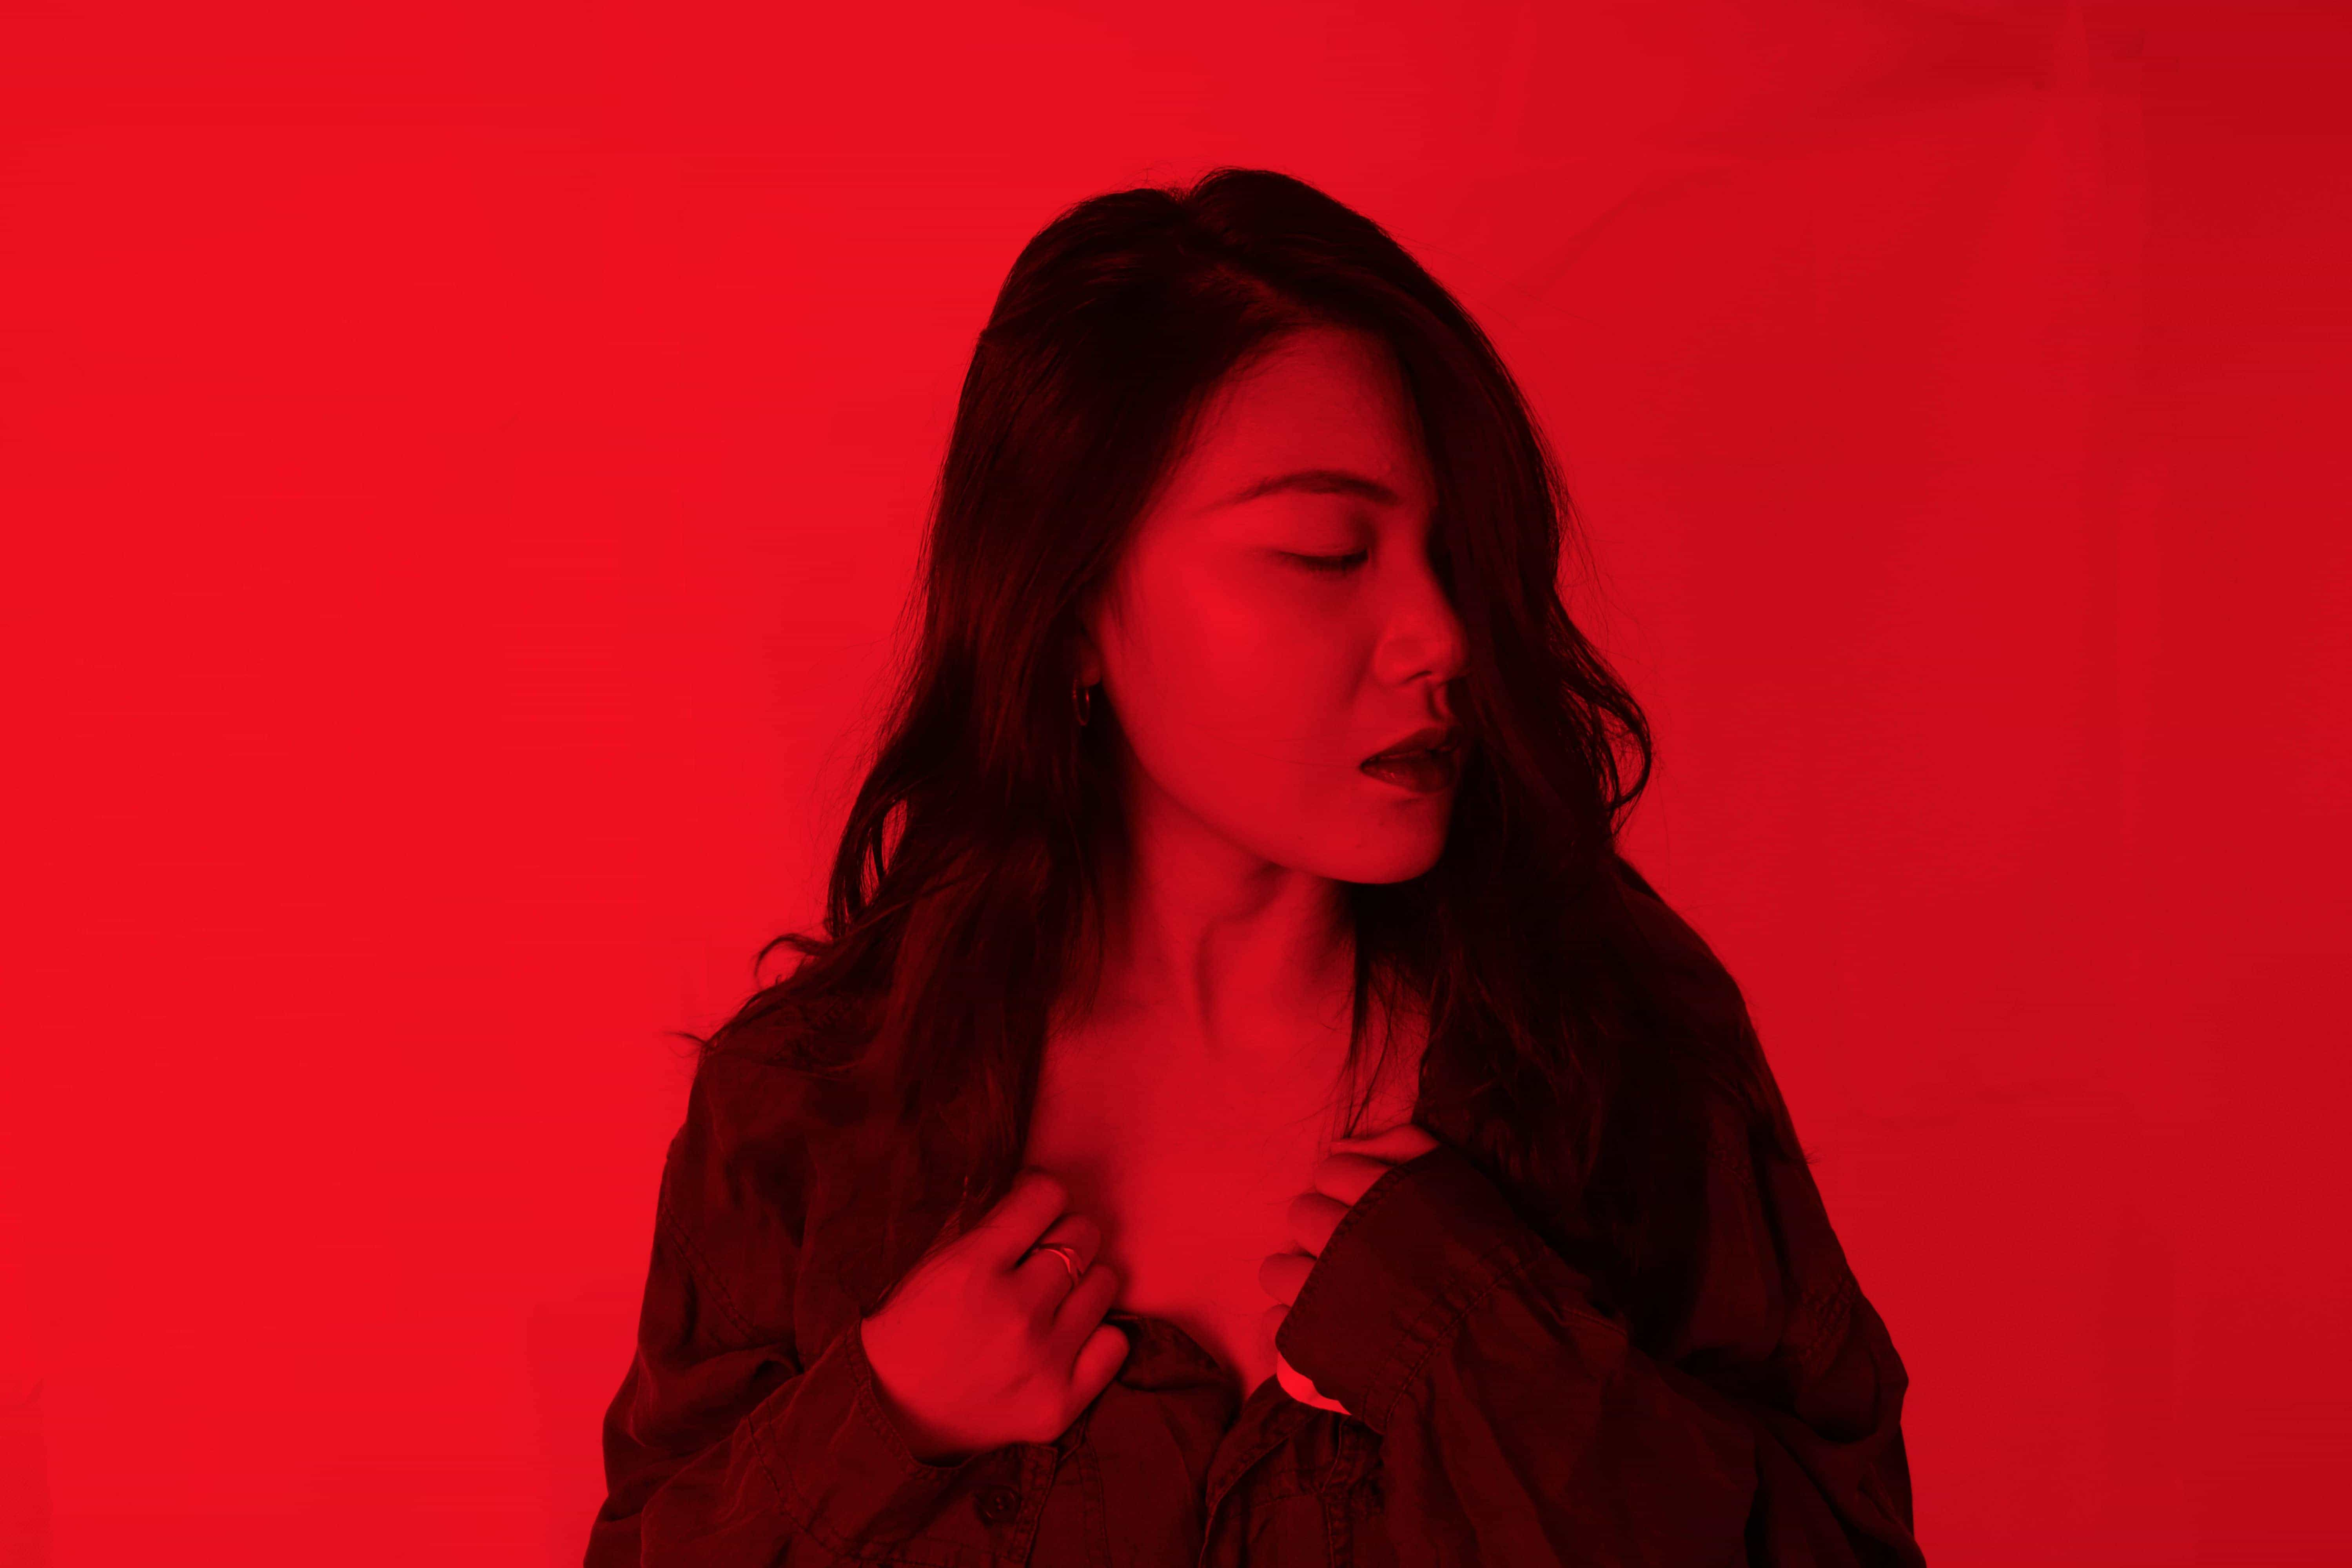 A woman clutching at the neck line of her shirt with eyes closed in contemplation with the photo having a red overlay.